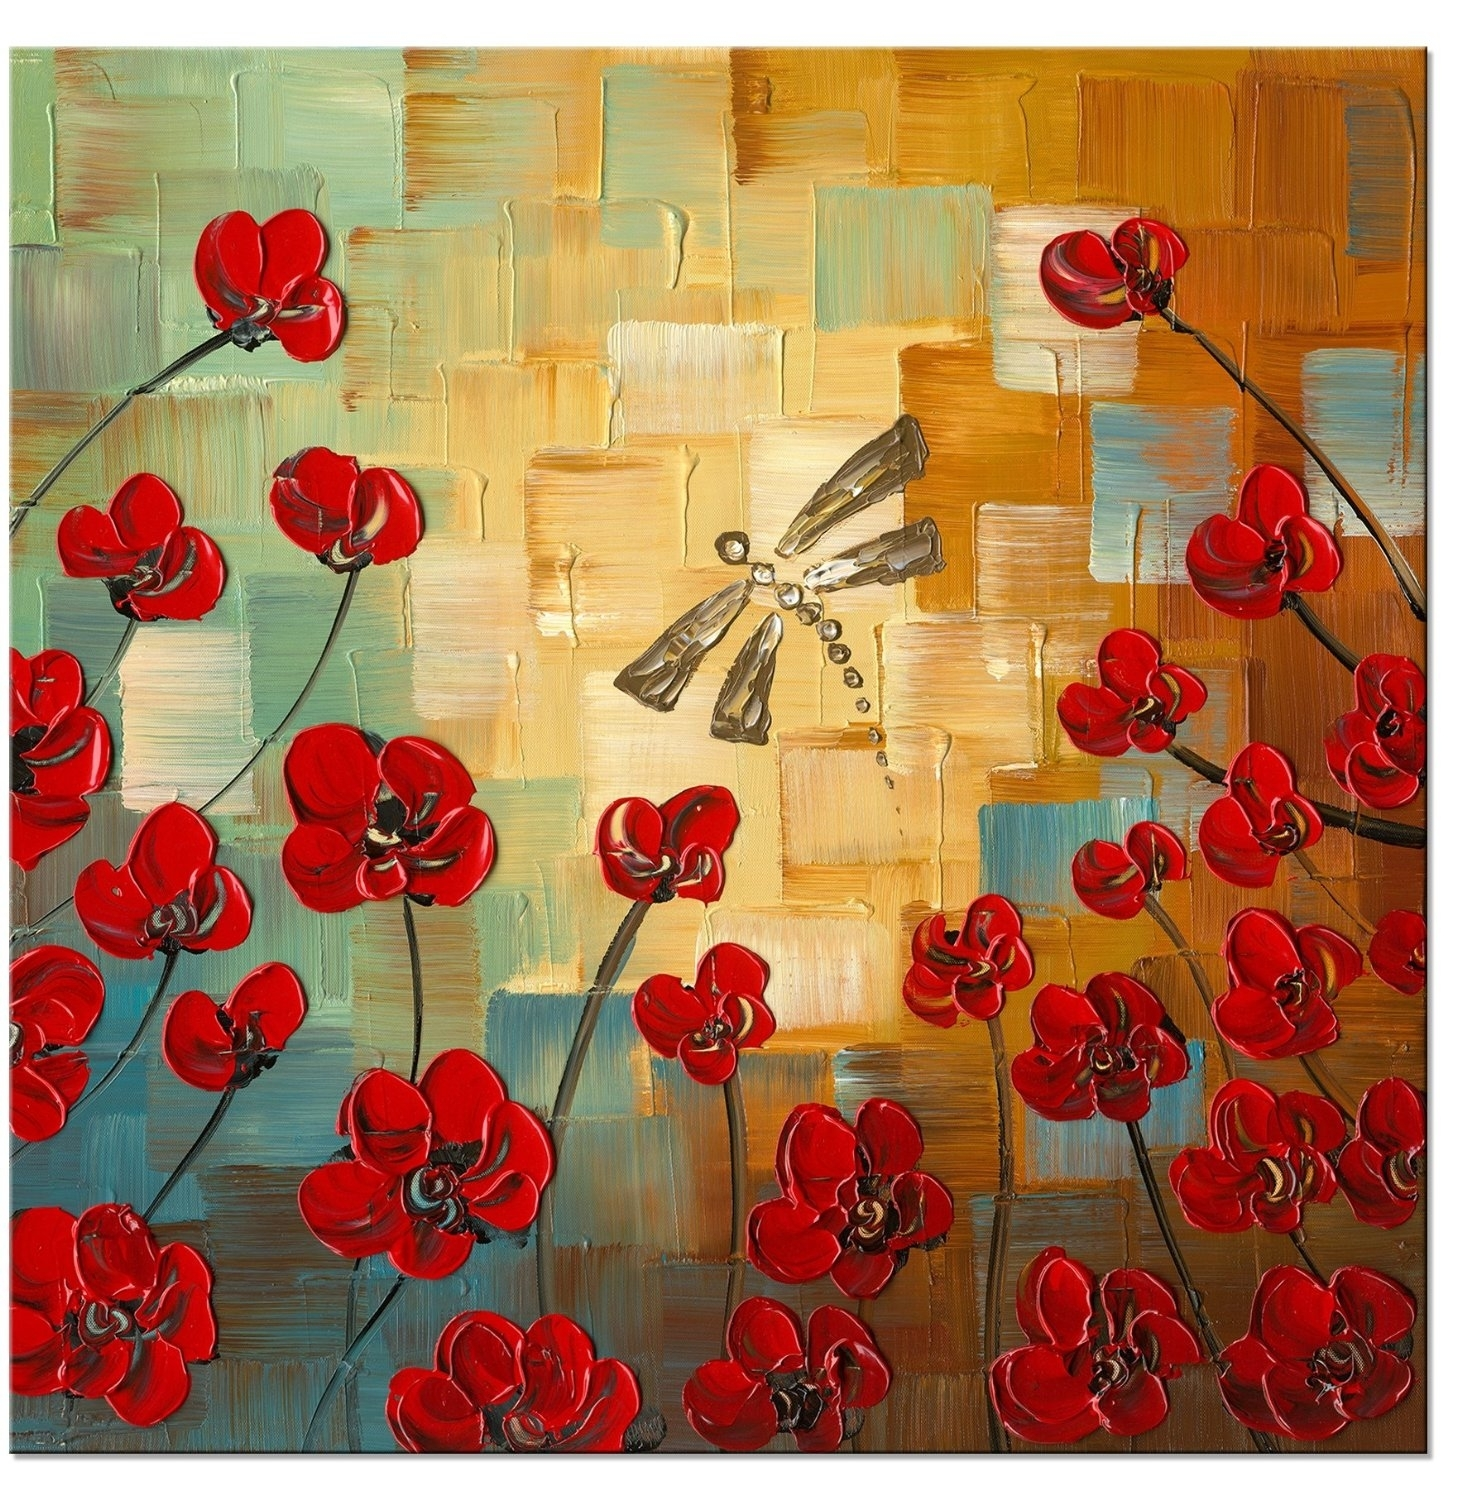 Dragonfly Modern Canvas Art Wall Decor Floral Oil Painting Wall Art Inside Most Recently Released Floral Wall Art (View 7 of 20)